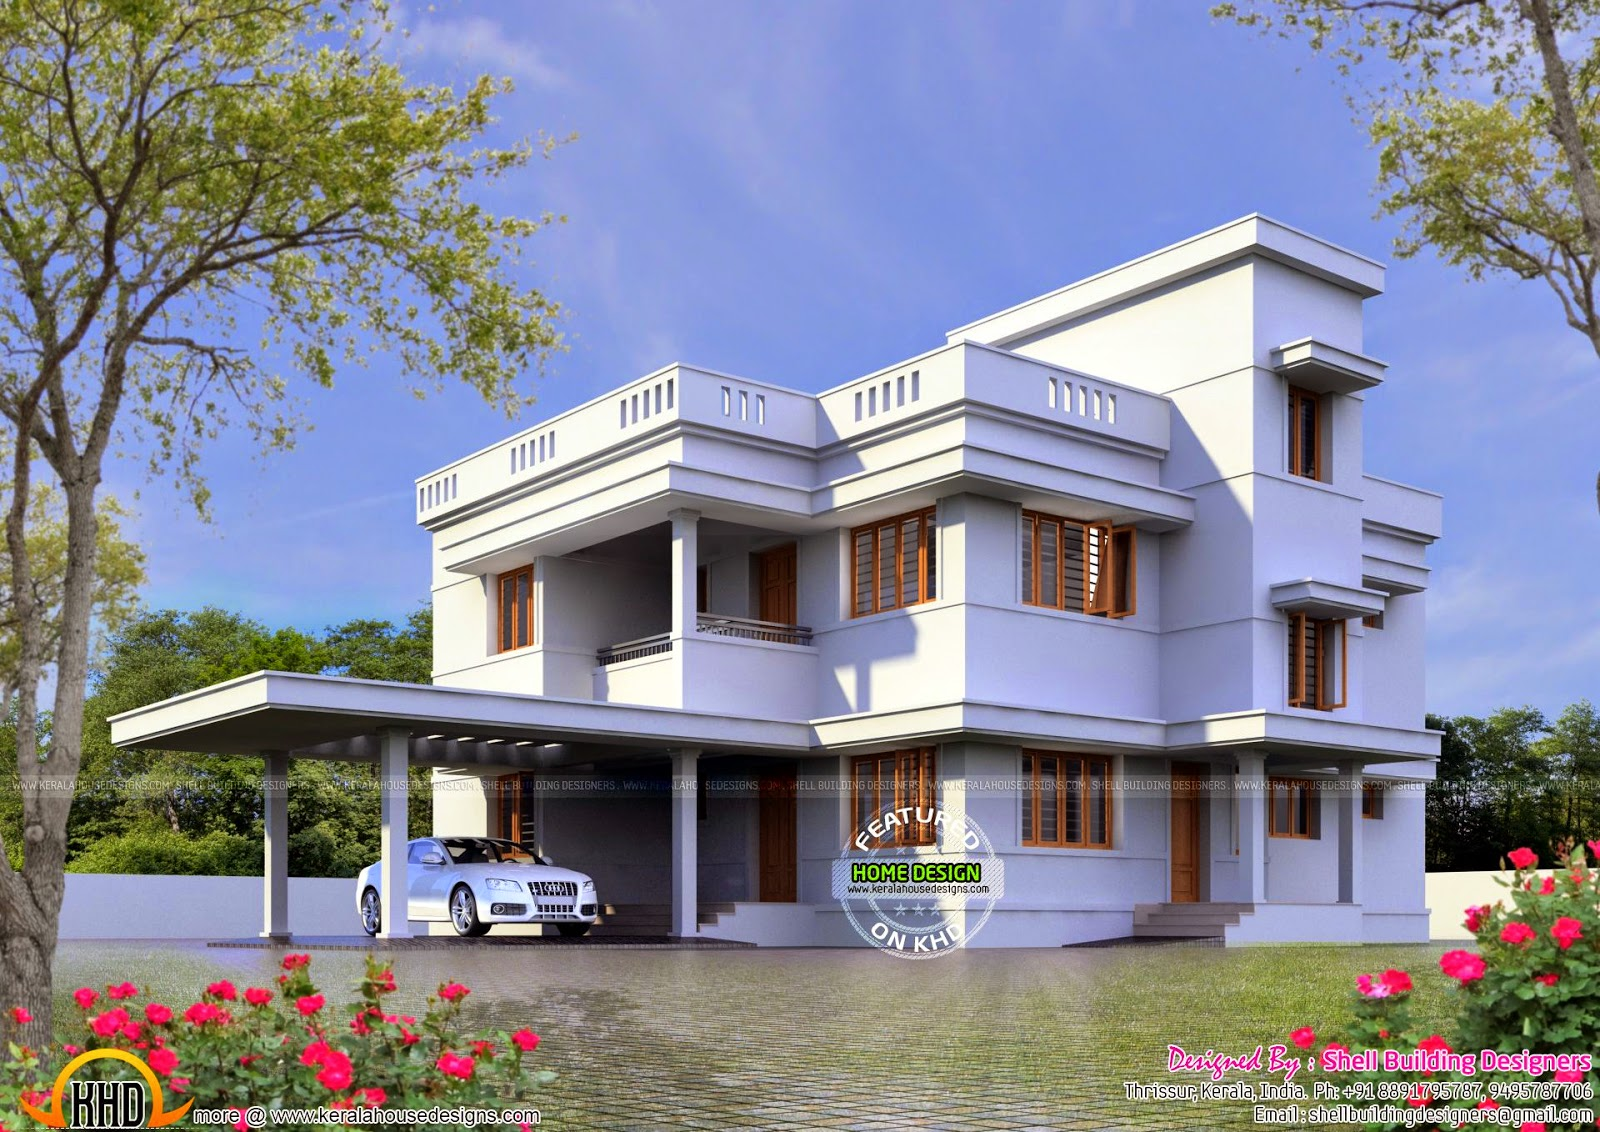 3397 Square Feet Flat Roof Style Home Home Design Simple